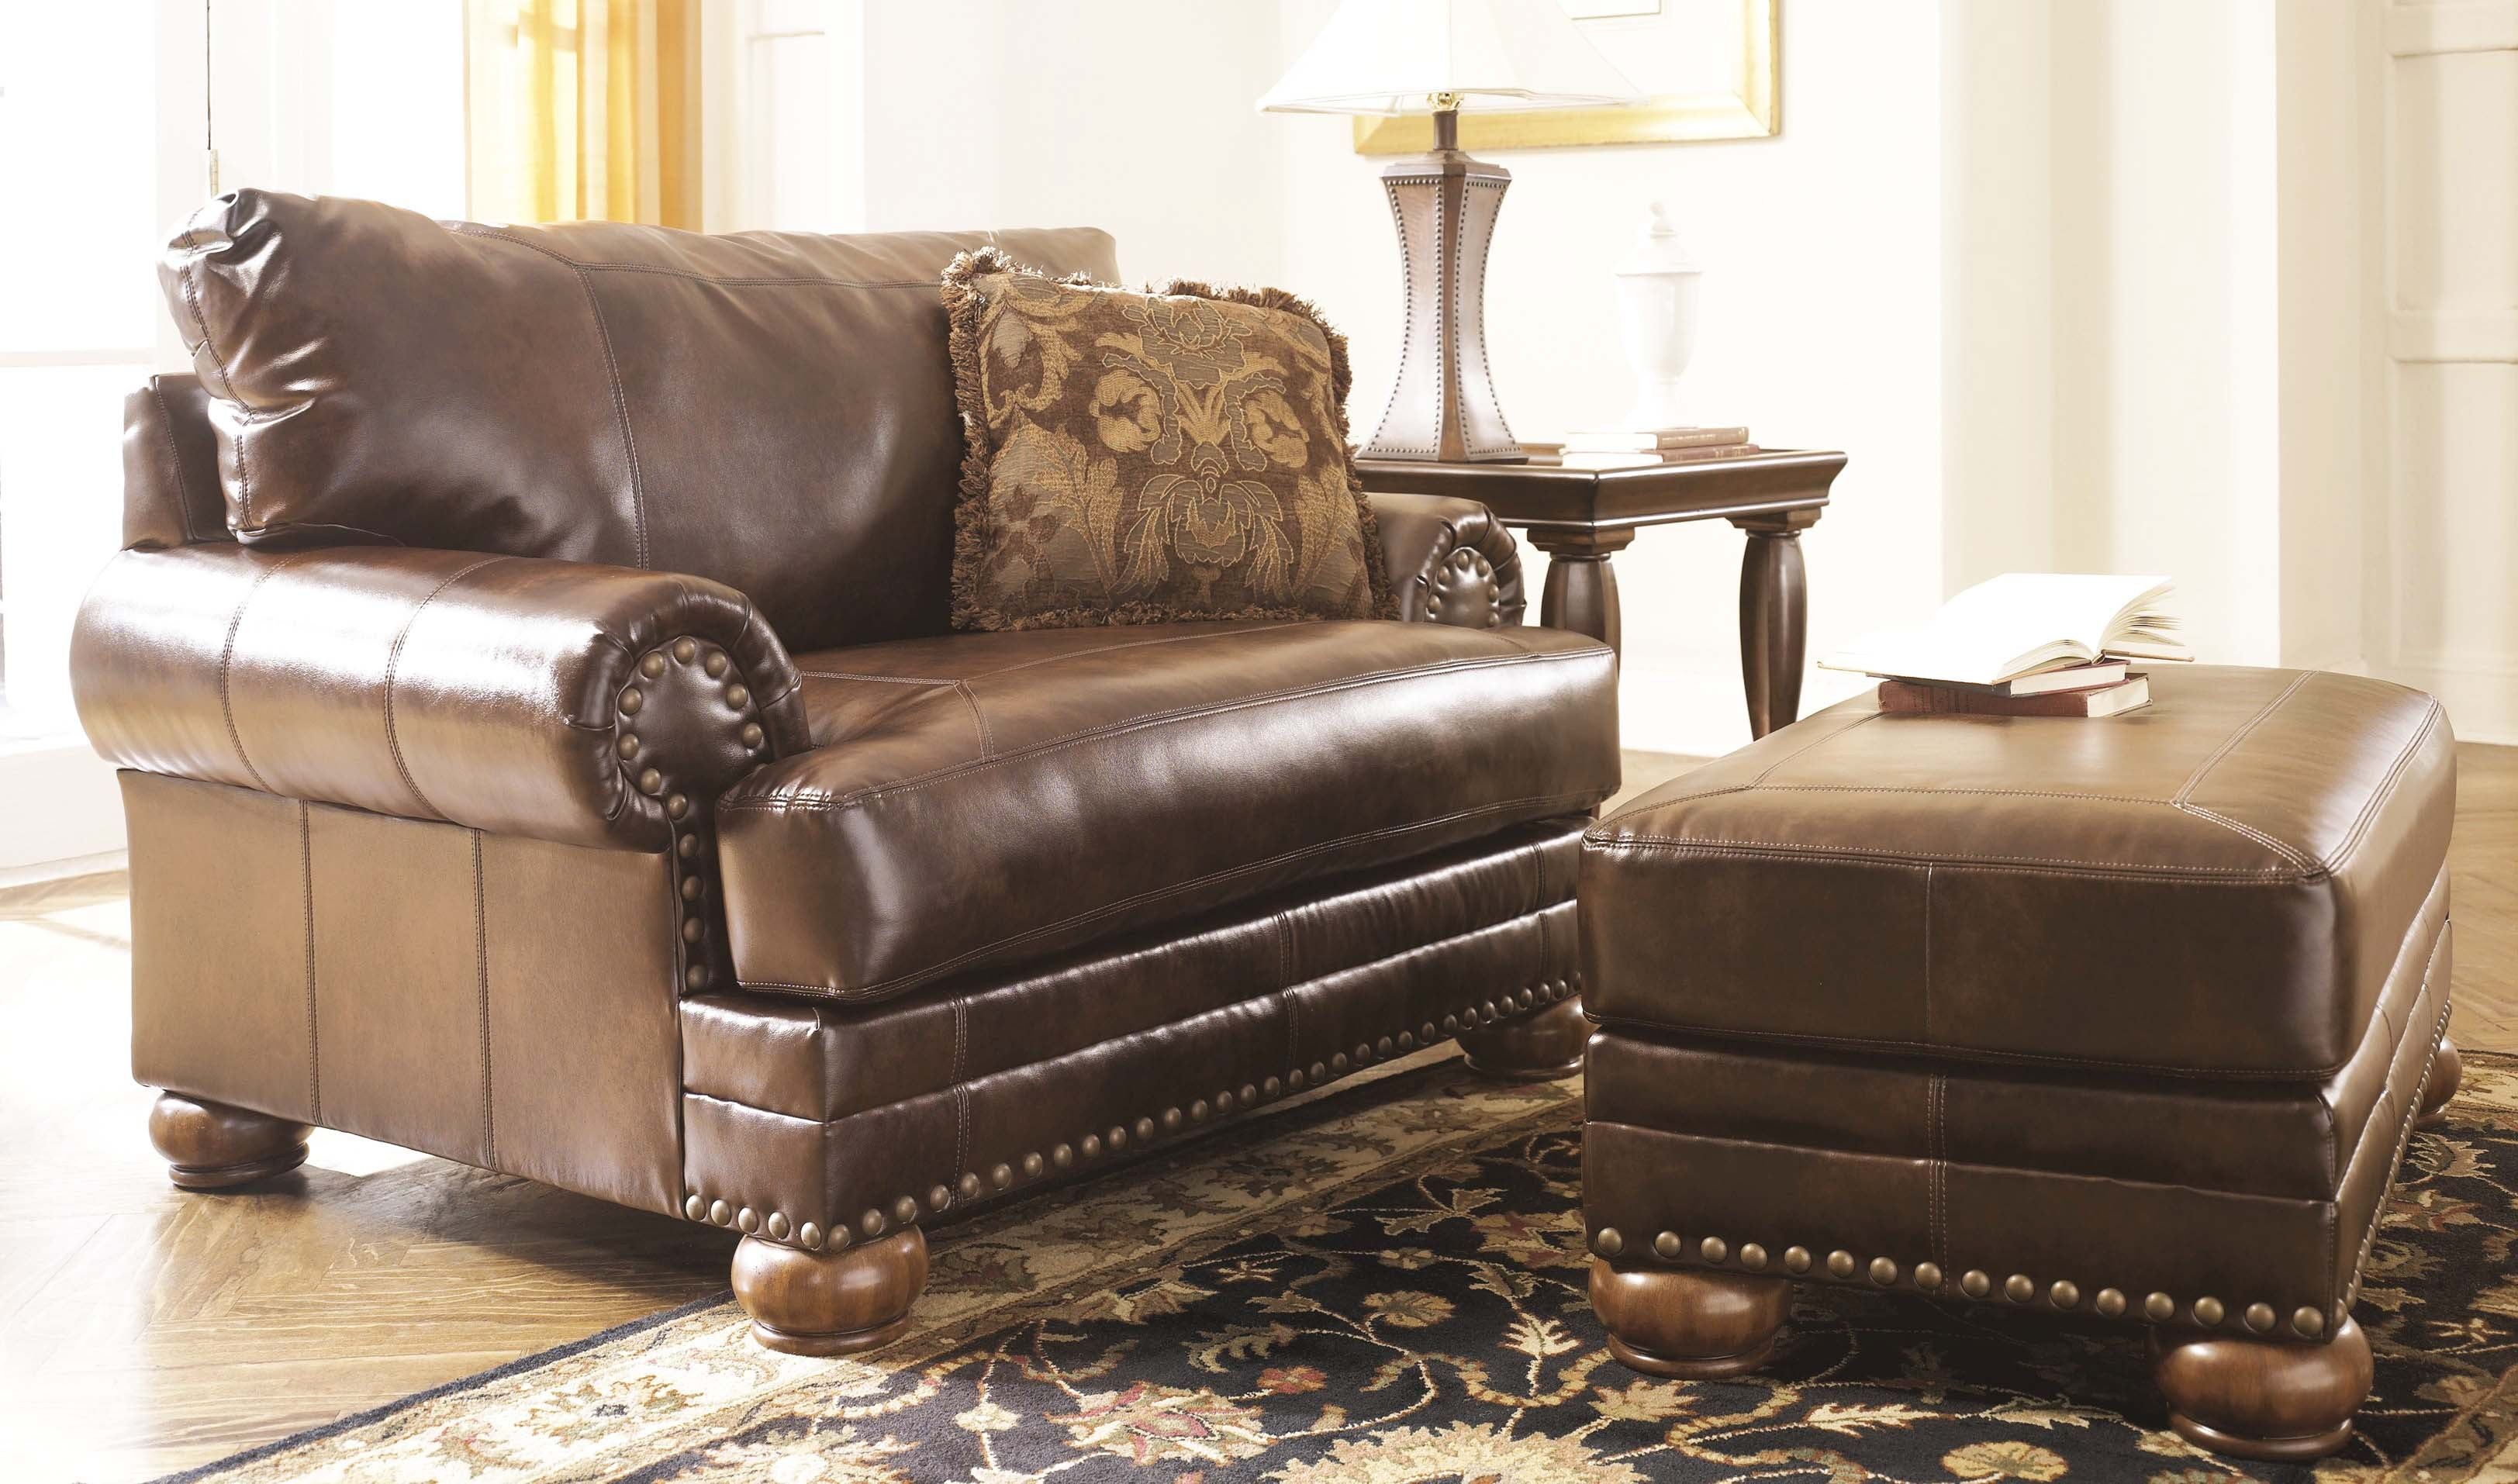 Oversized Chairs for Living Room | World Market Armchair | Leather Chair and Ottoman